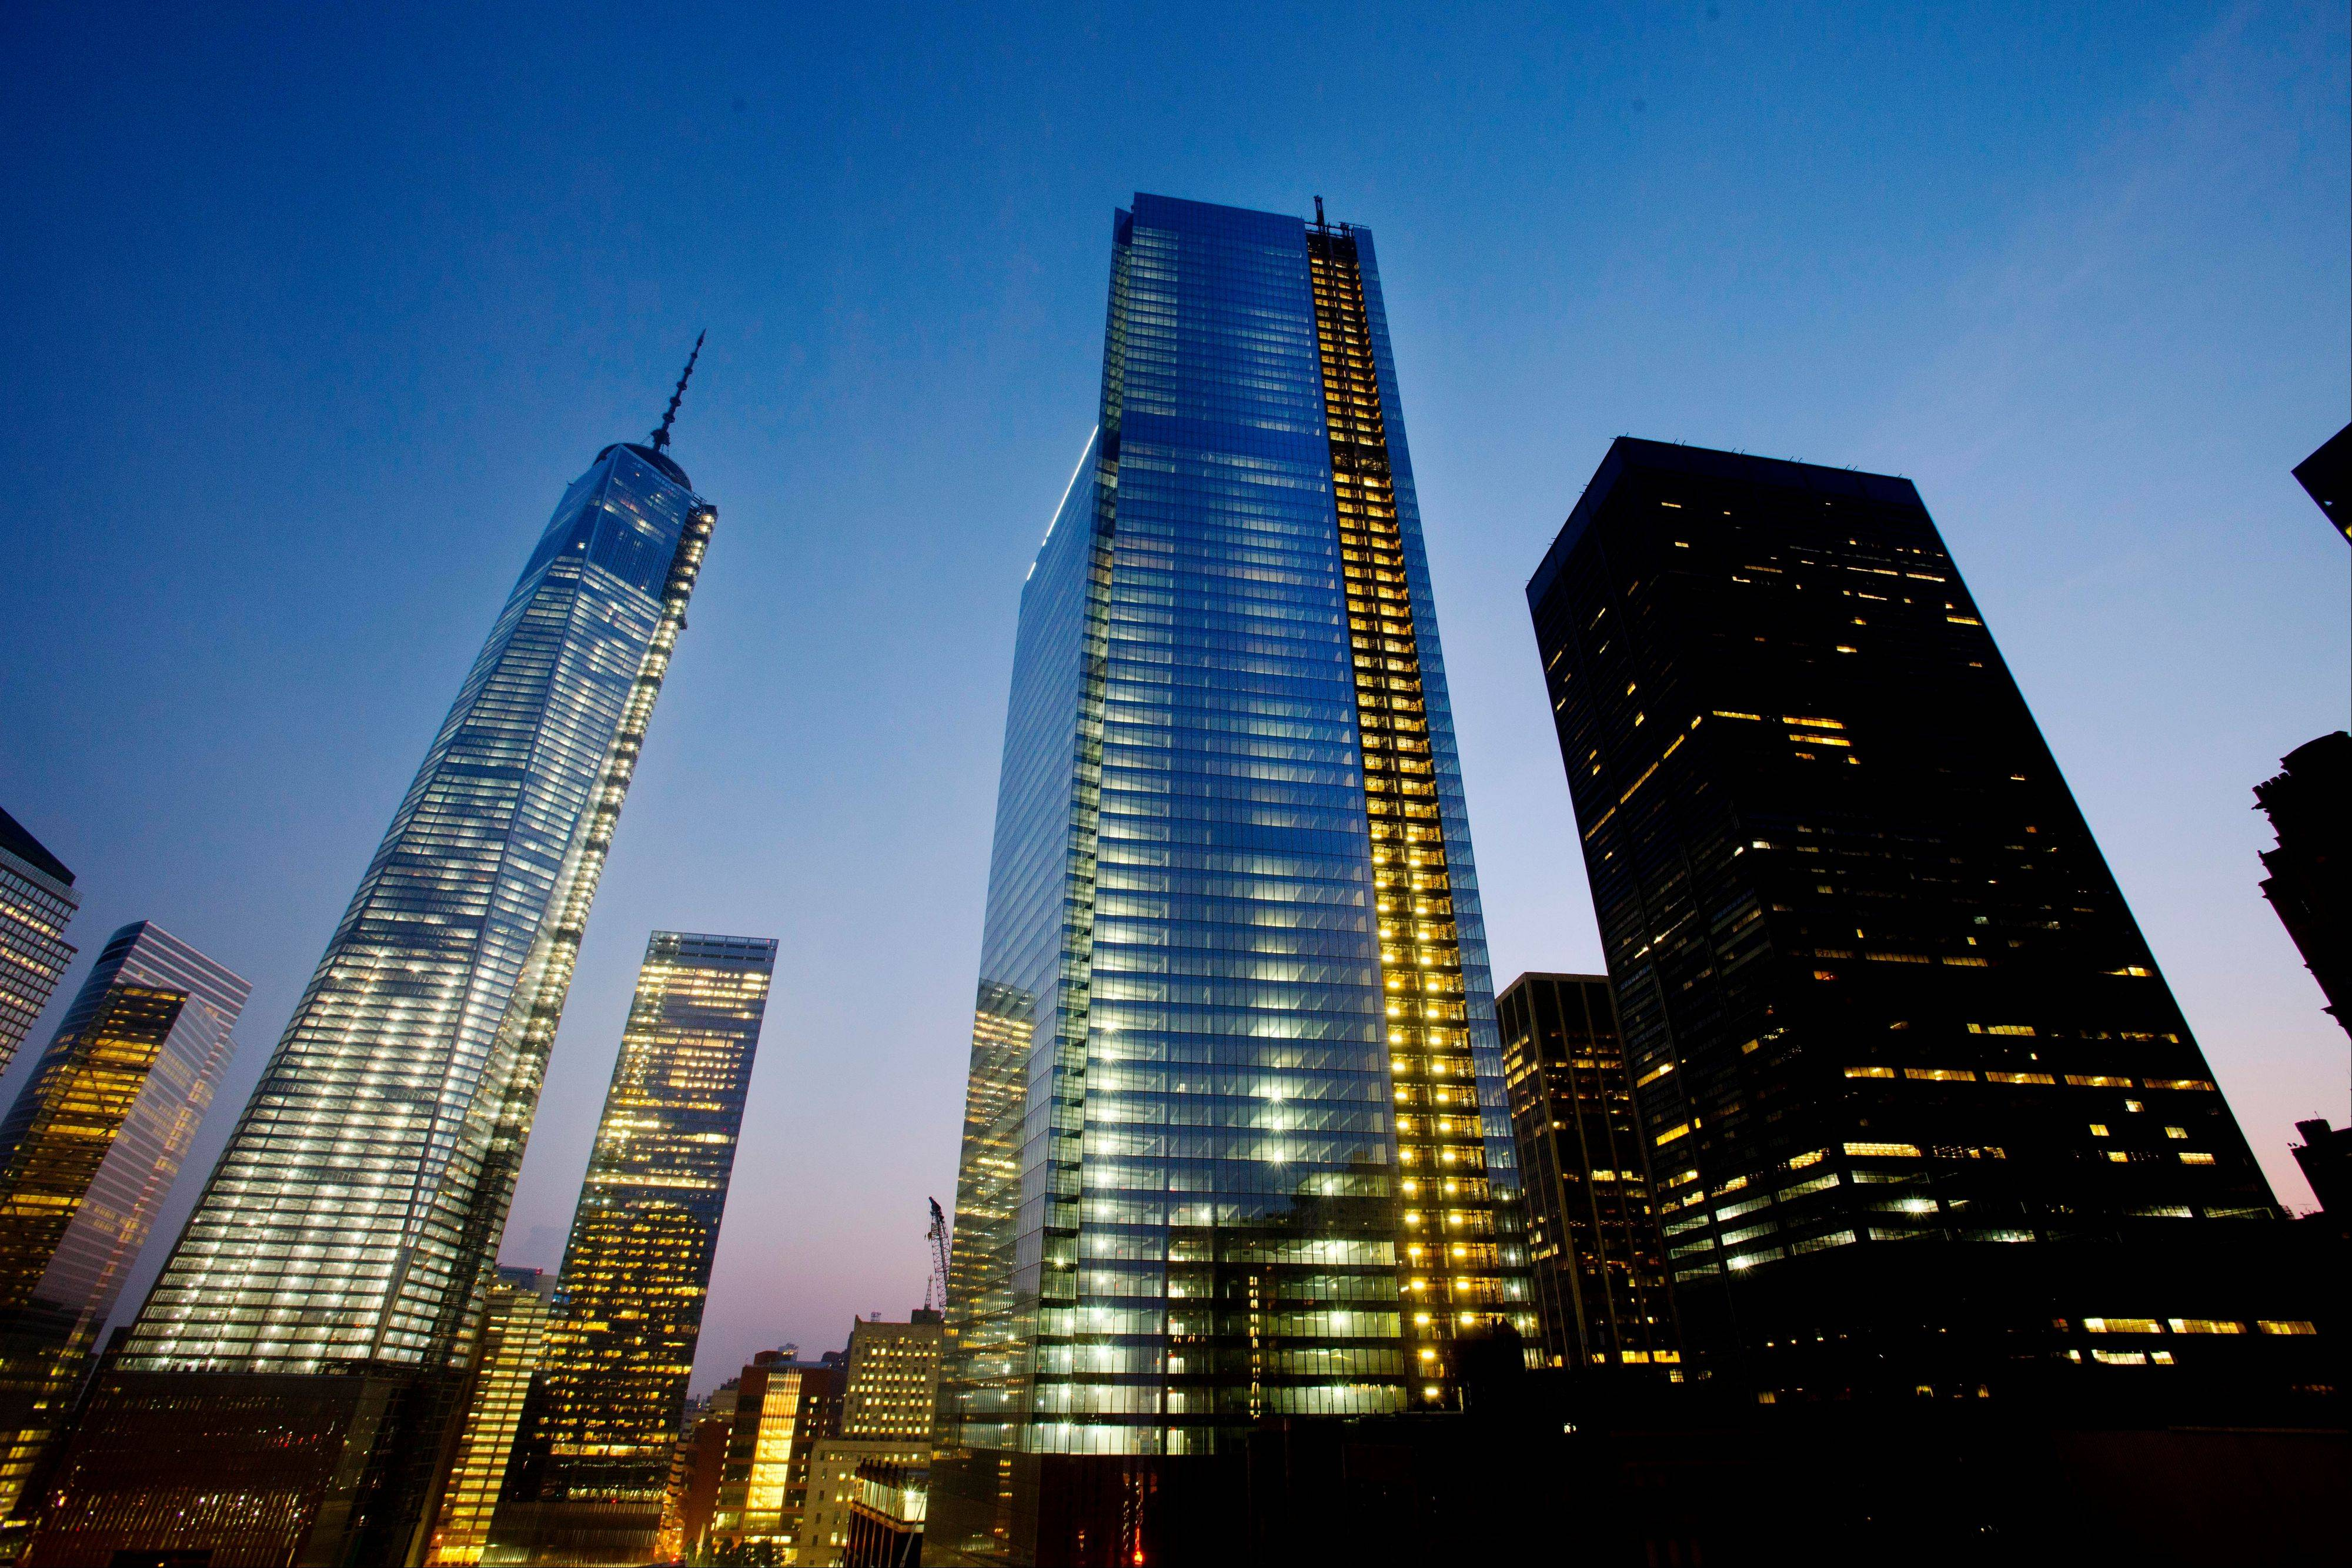 Four World Trade Center, center, stands next to One World Trade Center, left, in lower Manhattan, Wednesday, Sept. 11, 2013 in New York. Ceremonies will be held Wednesday at the memorial to mark the 12th anniversary of the 2001 terrorist attacks.